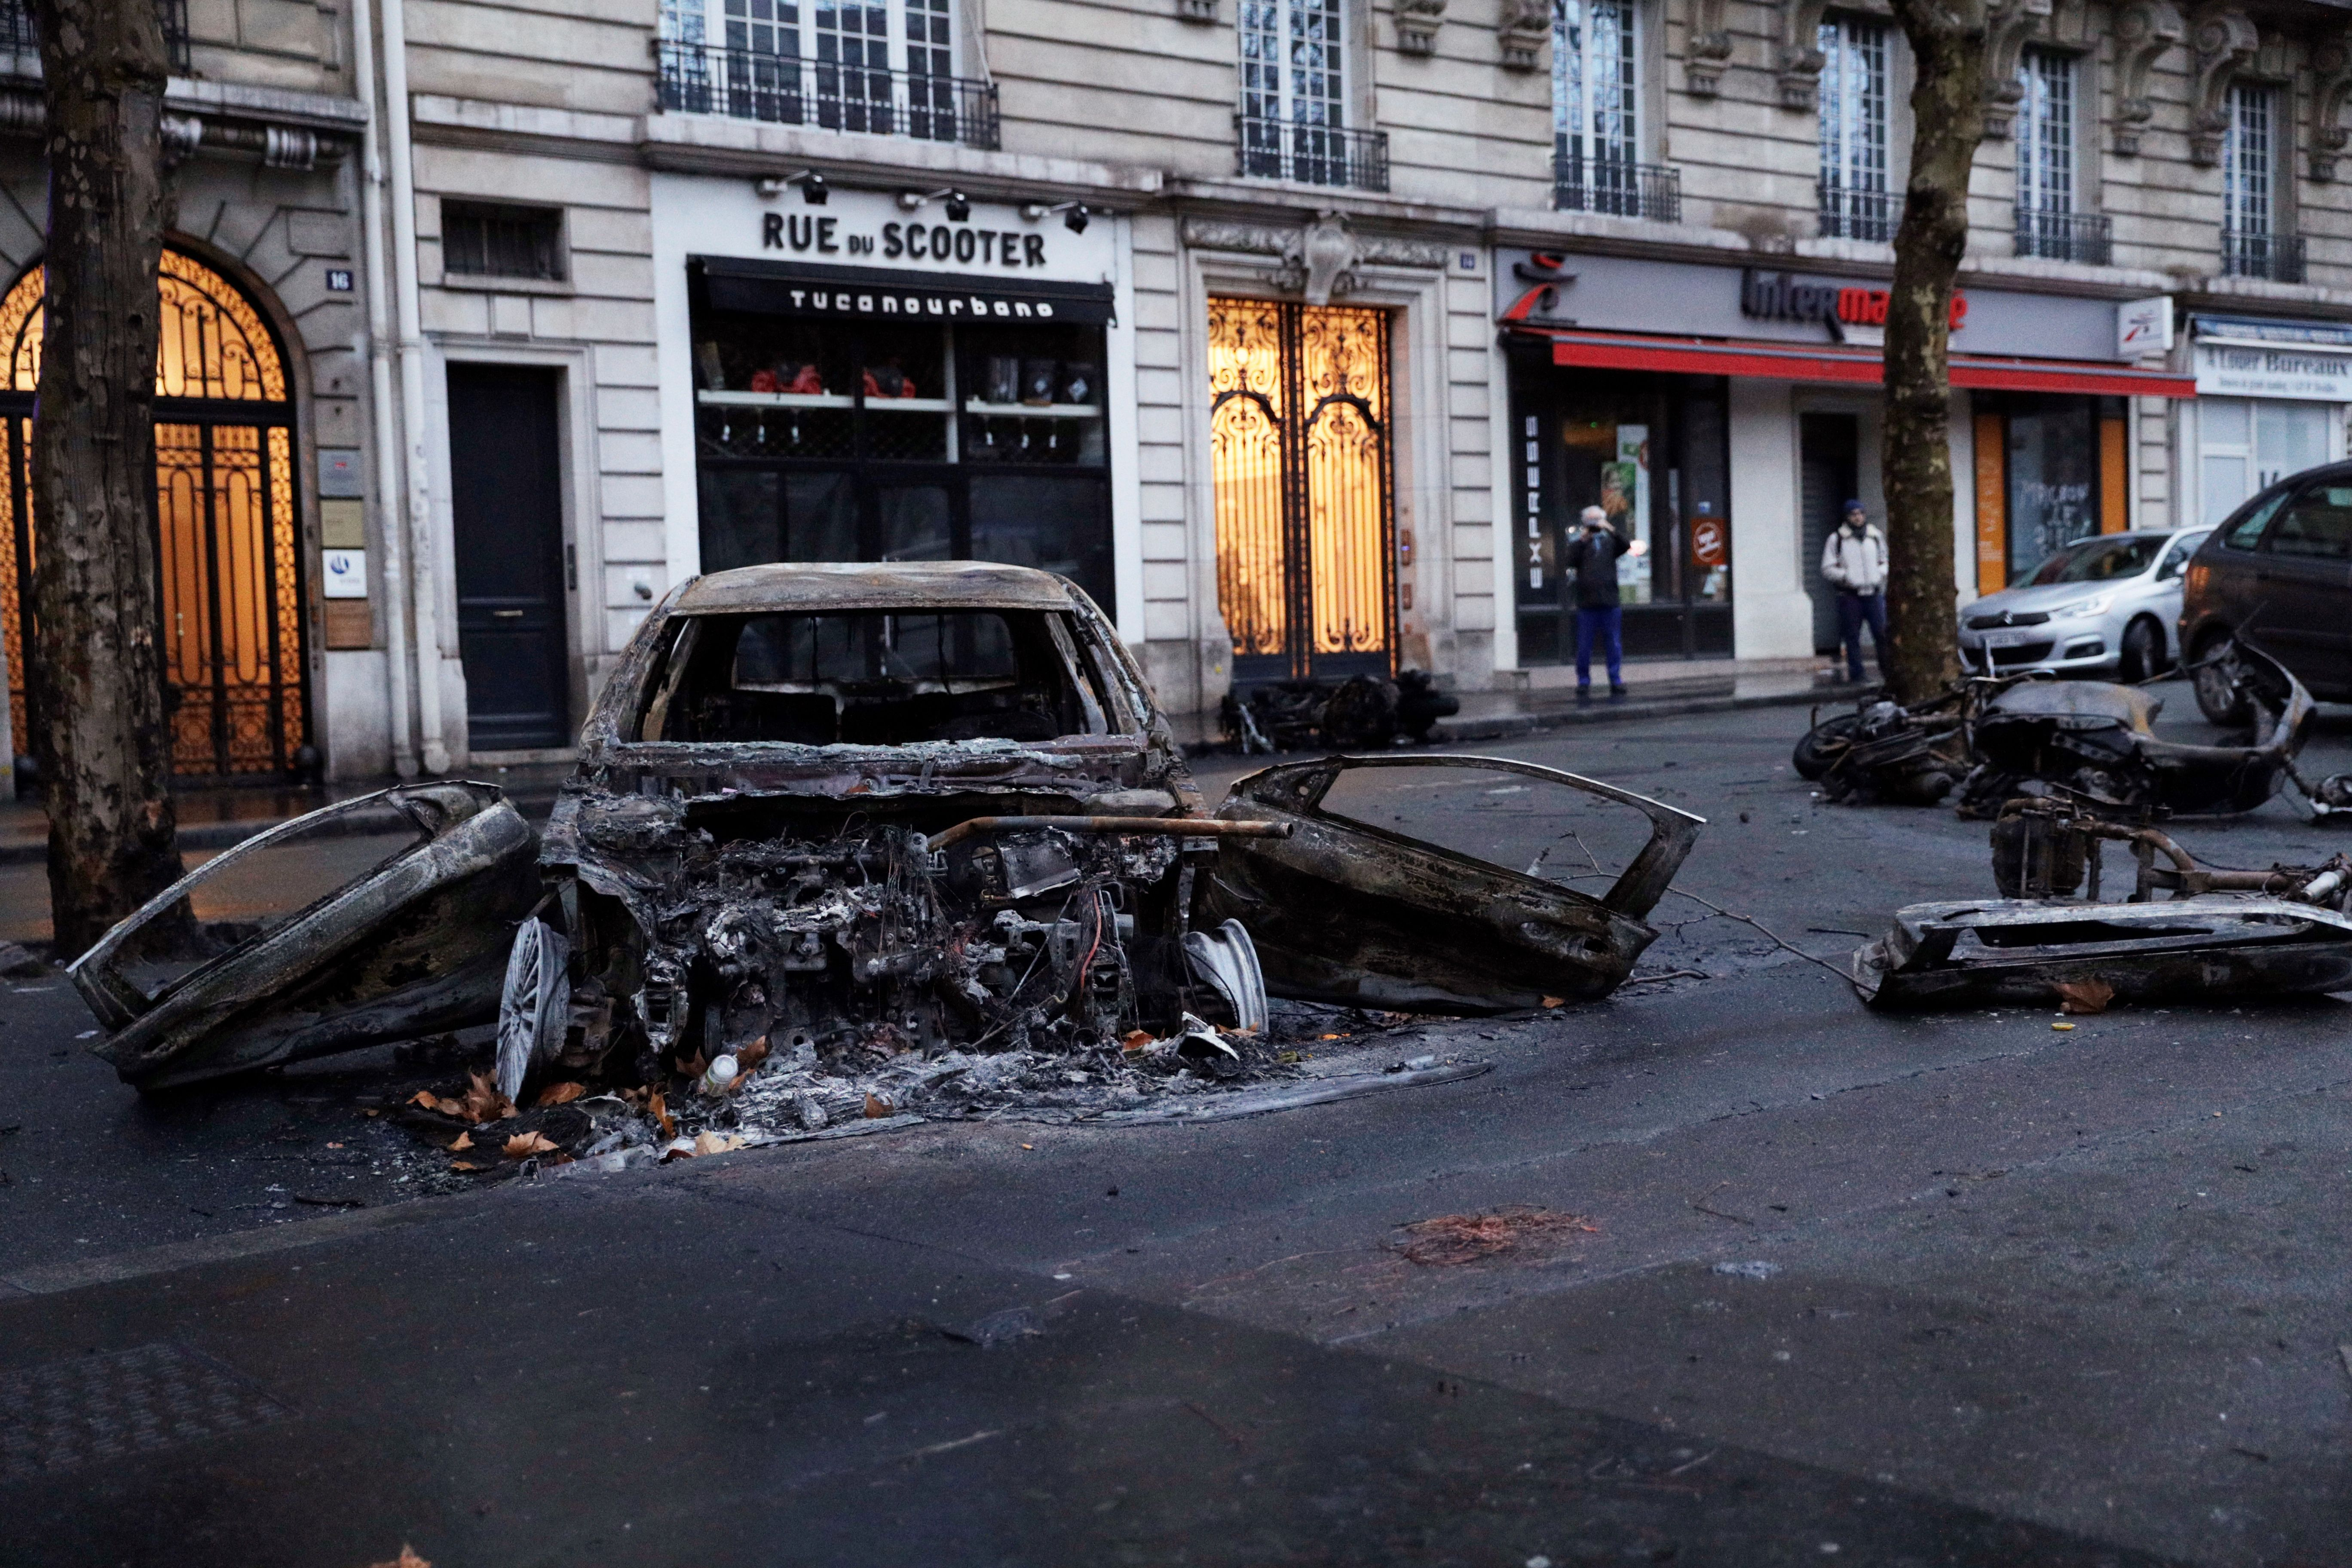 Charred car in Paris from the riots